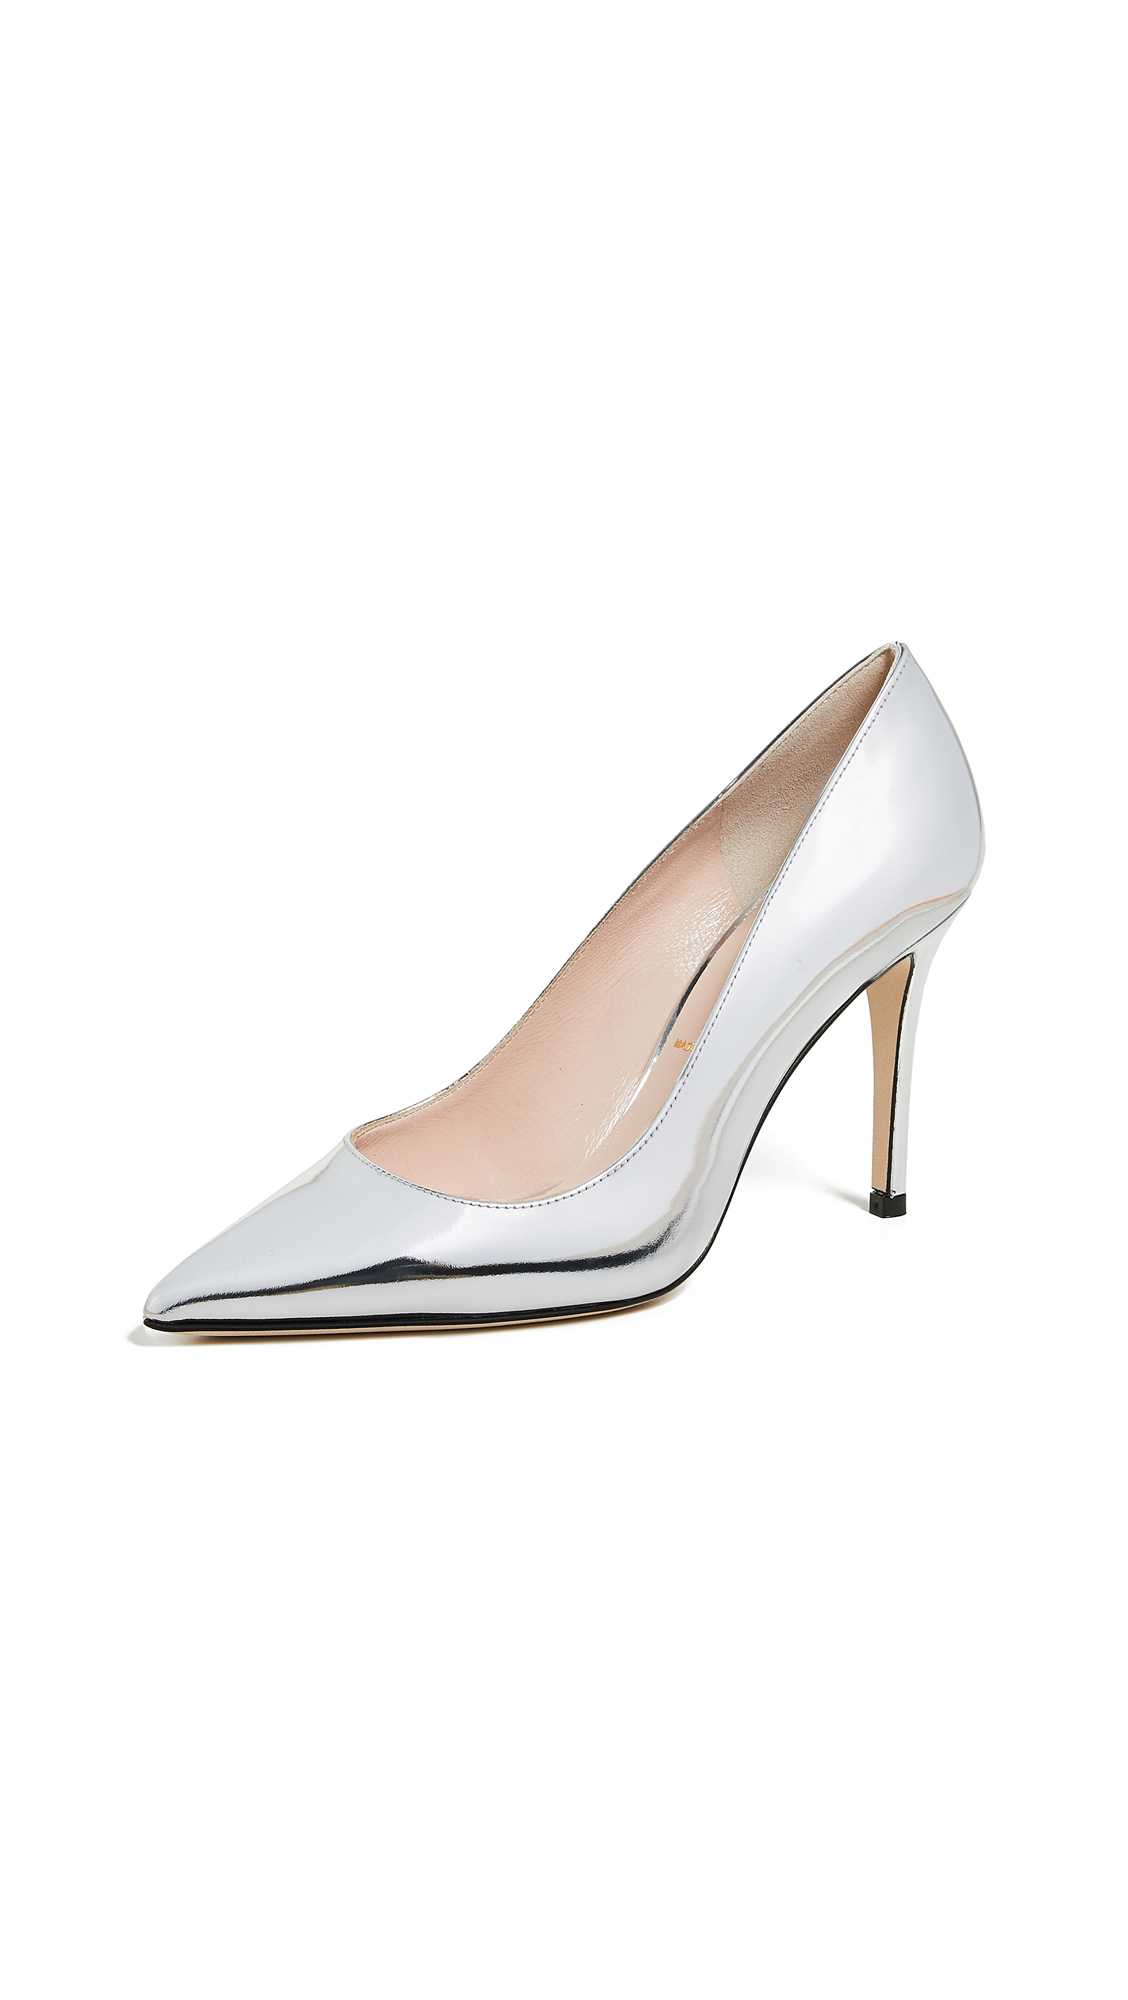 Kate Spade New York Vivian Point Toe Pumps - Silver